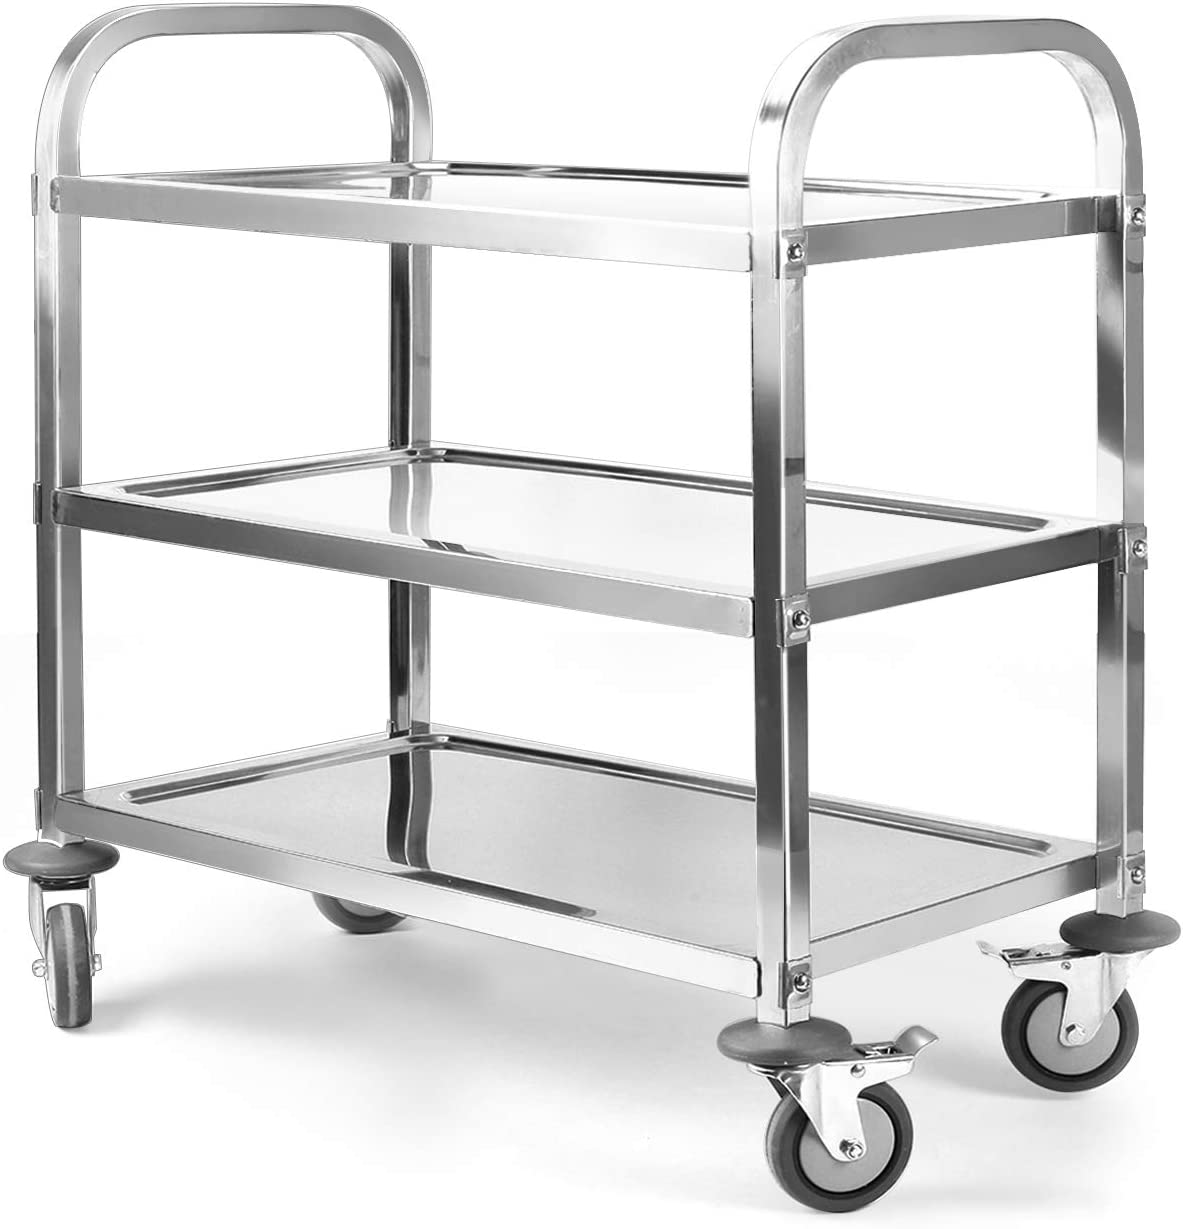 tonchean 3 Tier Shelf Kitchen Cart Trolley Utility Rolling Serving Catering Storage with Locking Wheels for Kitchen Restaurant Hotel Cafe Home